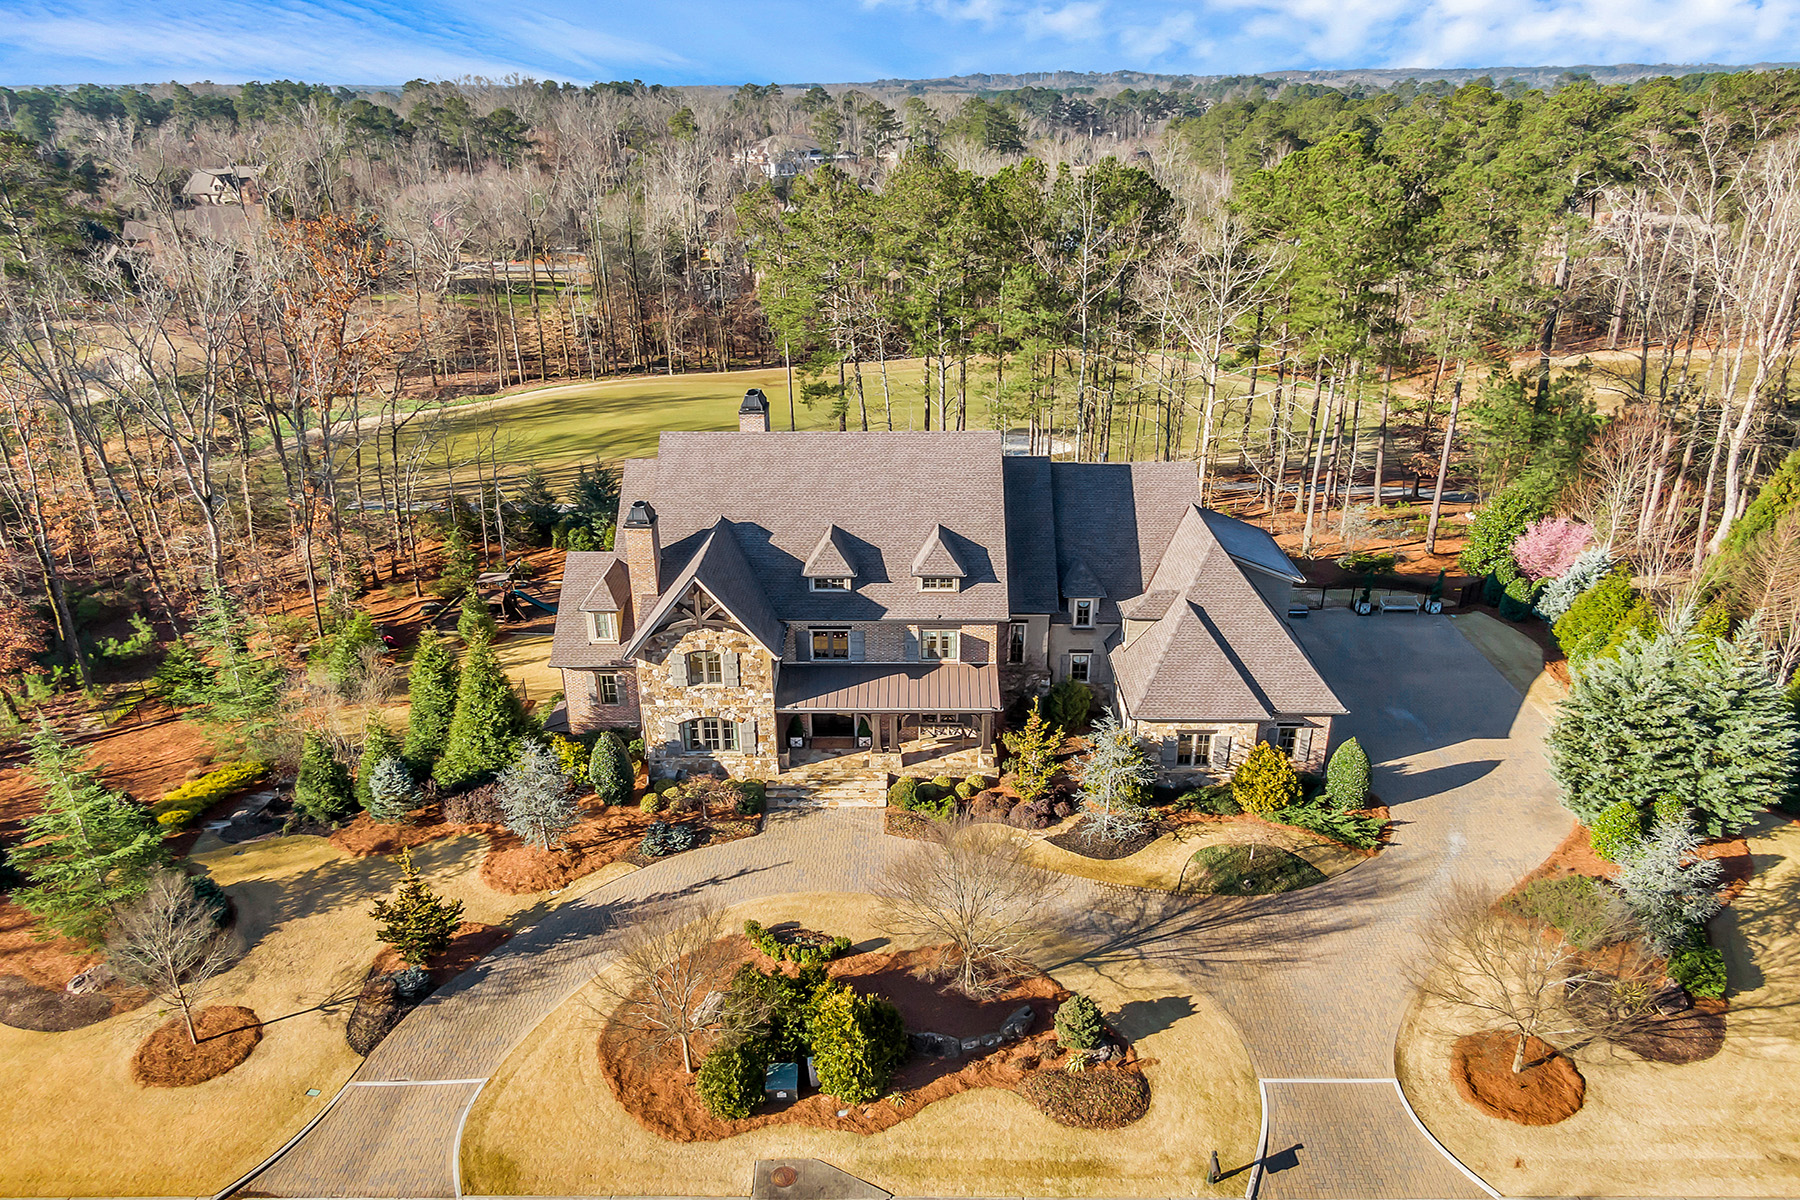 Single Family Homes for Active at Sophisticated Elegance 4834 Kettle River Point Suwanee, Georgia 30024 United States